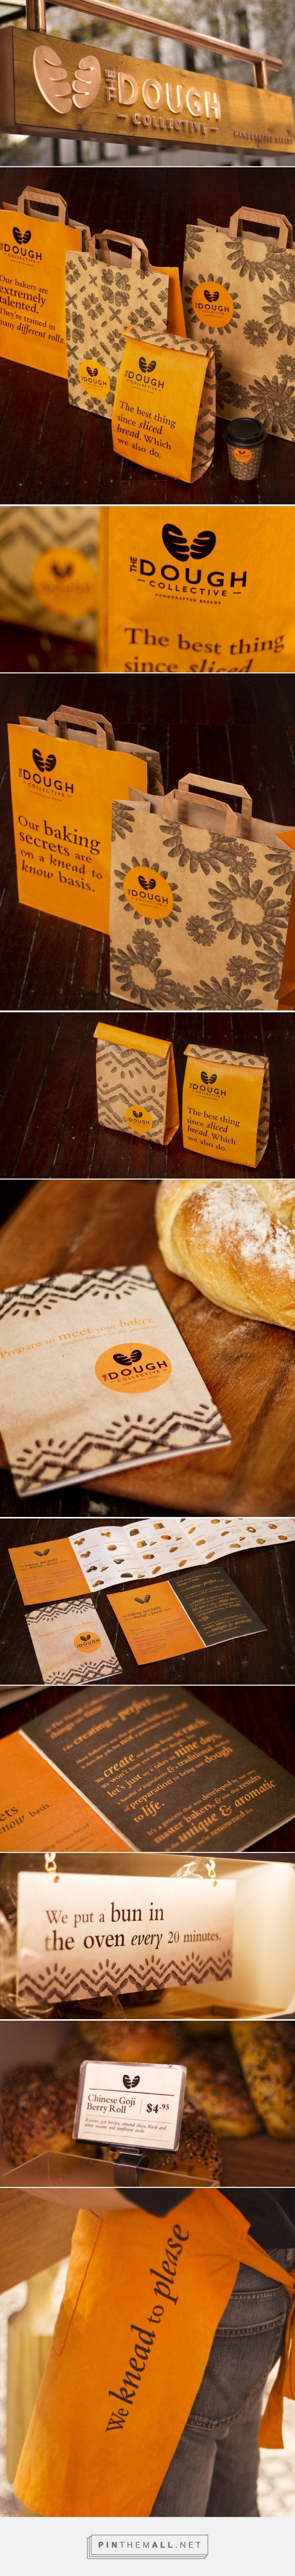 The Dough Collective Bakery Branding and Packaging by The Creative Method